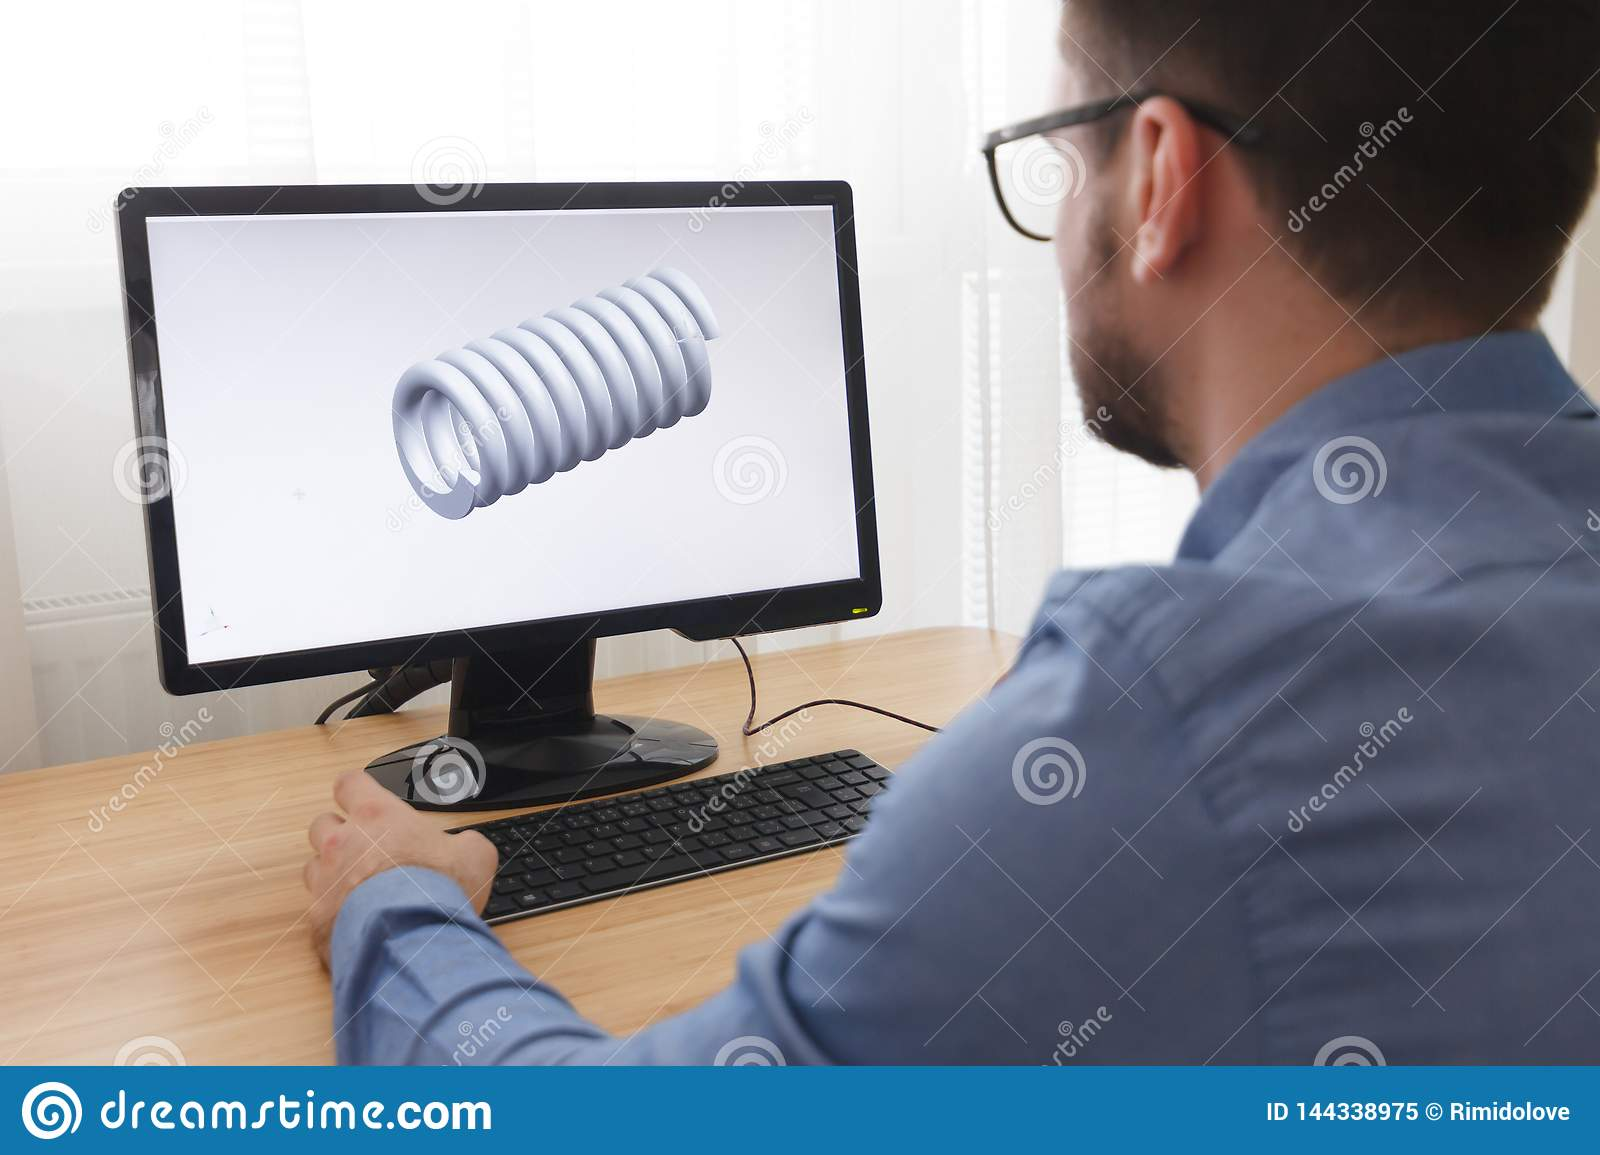 Engineer, Constructor, Designer in Glasses Working on a Personal Computer. He is Creating, Designing a New 3D Model of Mechanical